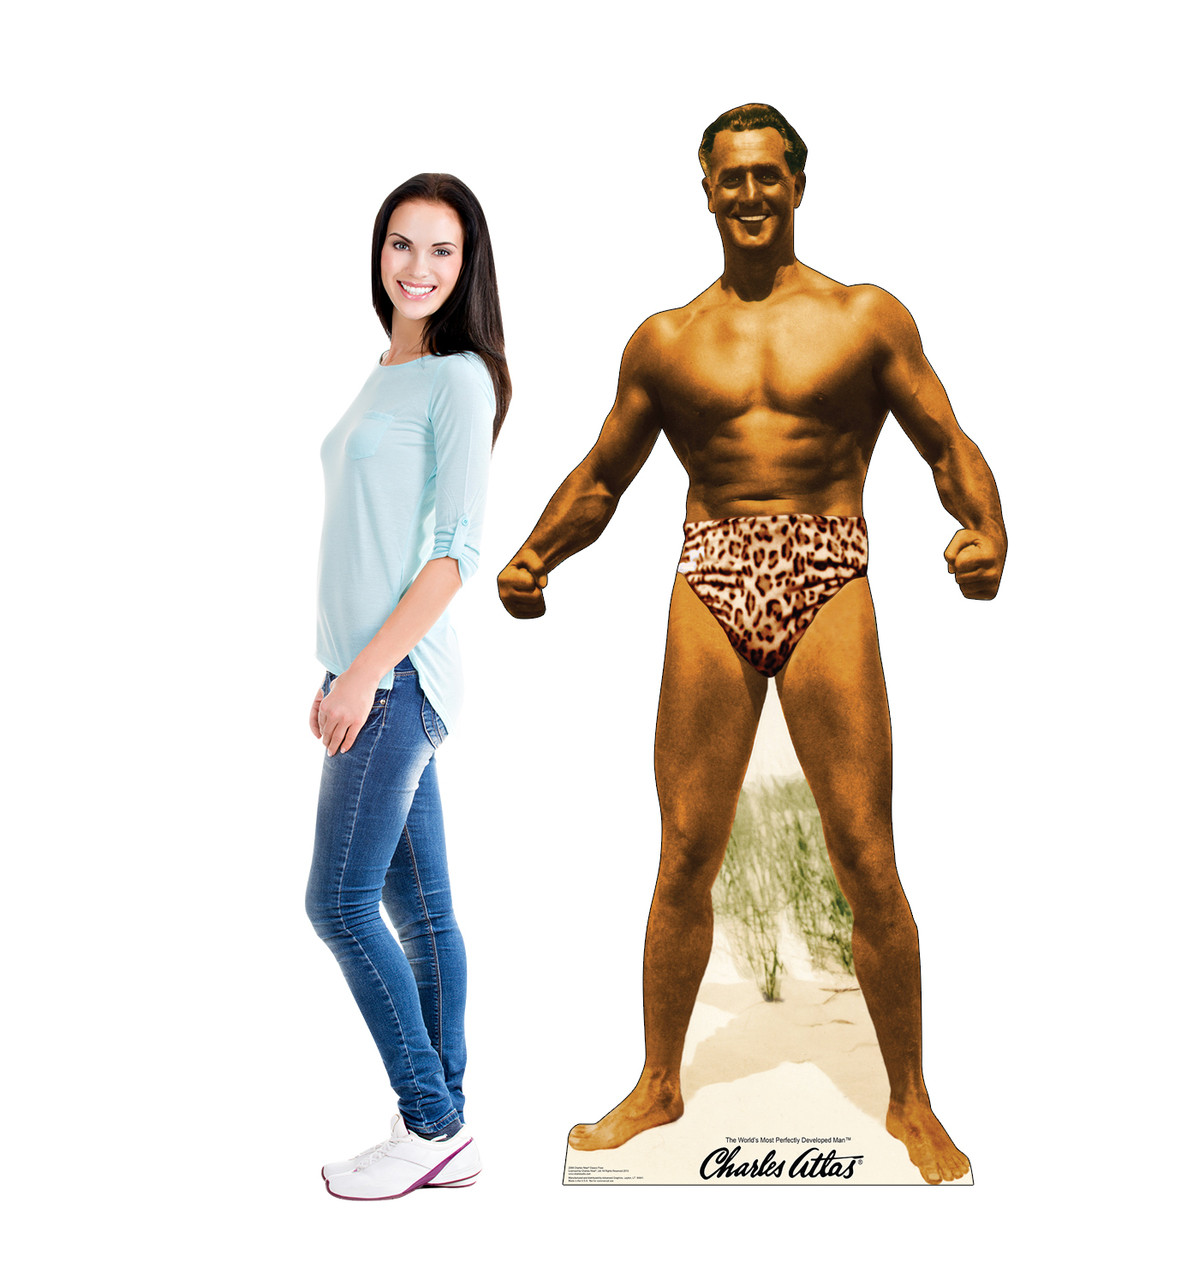 Life-size cardboard standee of Charles Atlas bodybuilder with model.